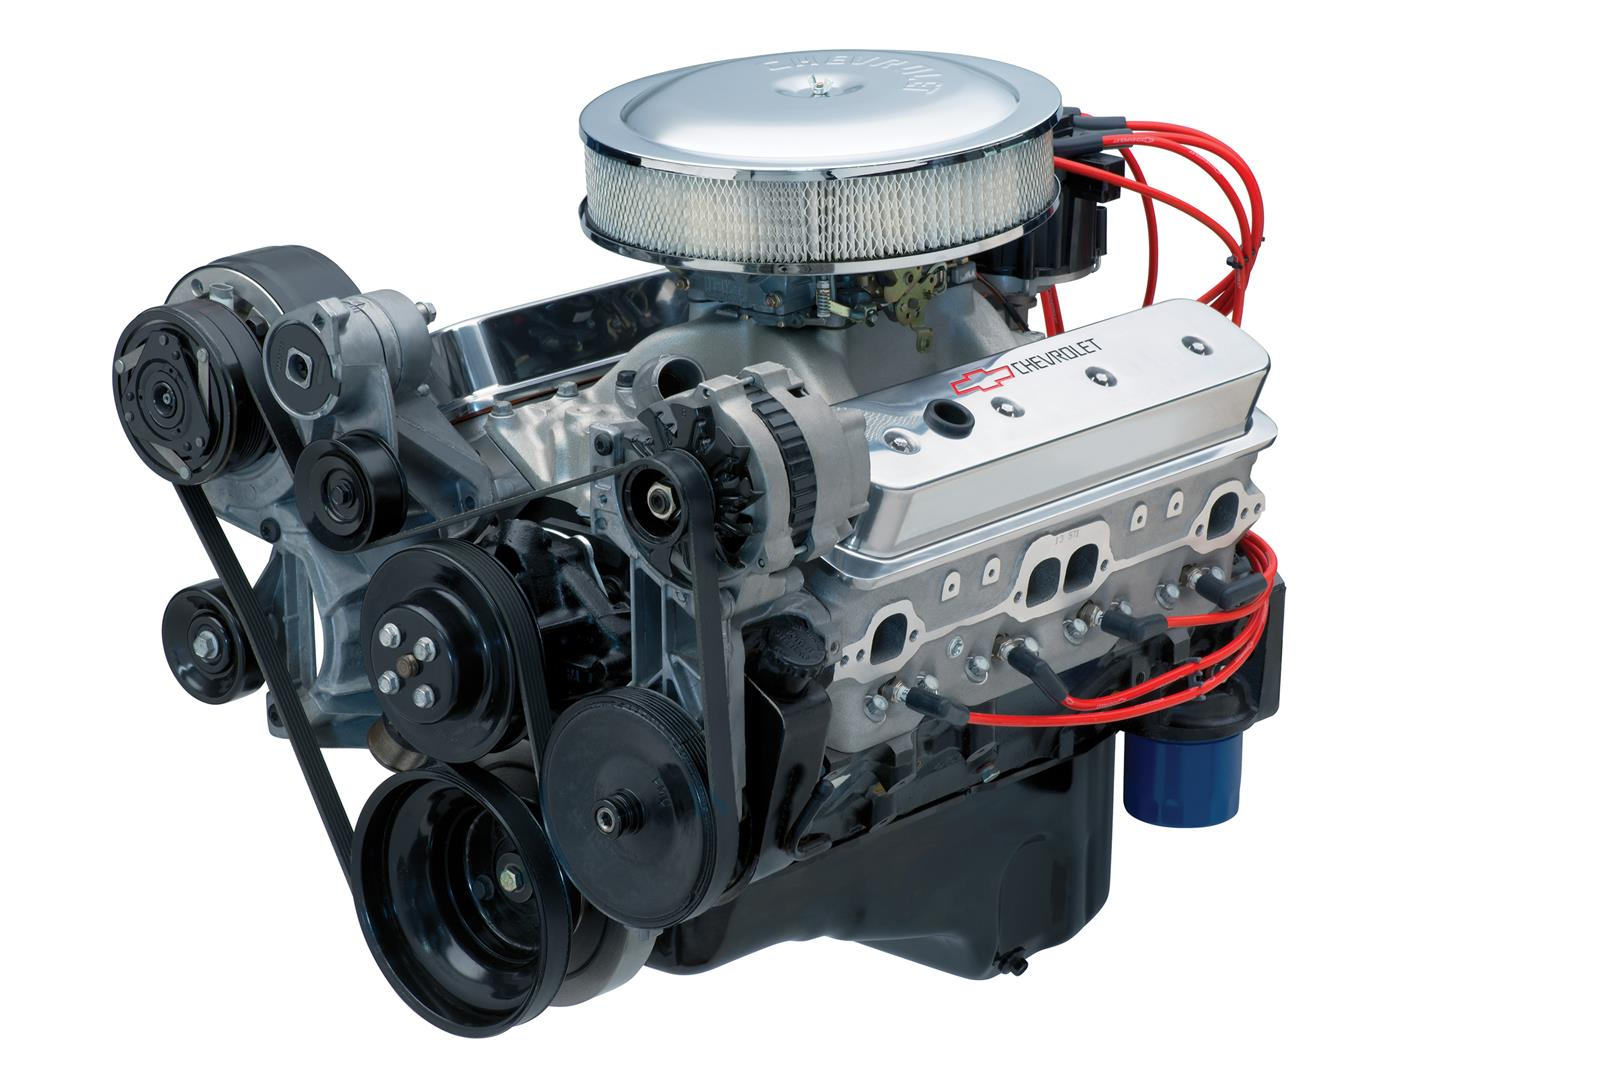 Chevrolet performance zz5 350 turn key crate engine for General motors marine engines